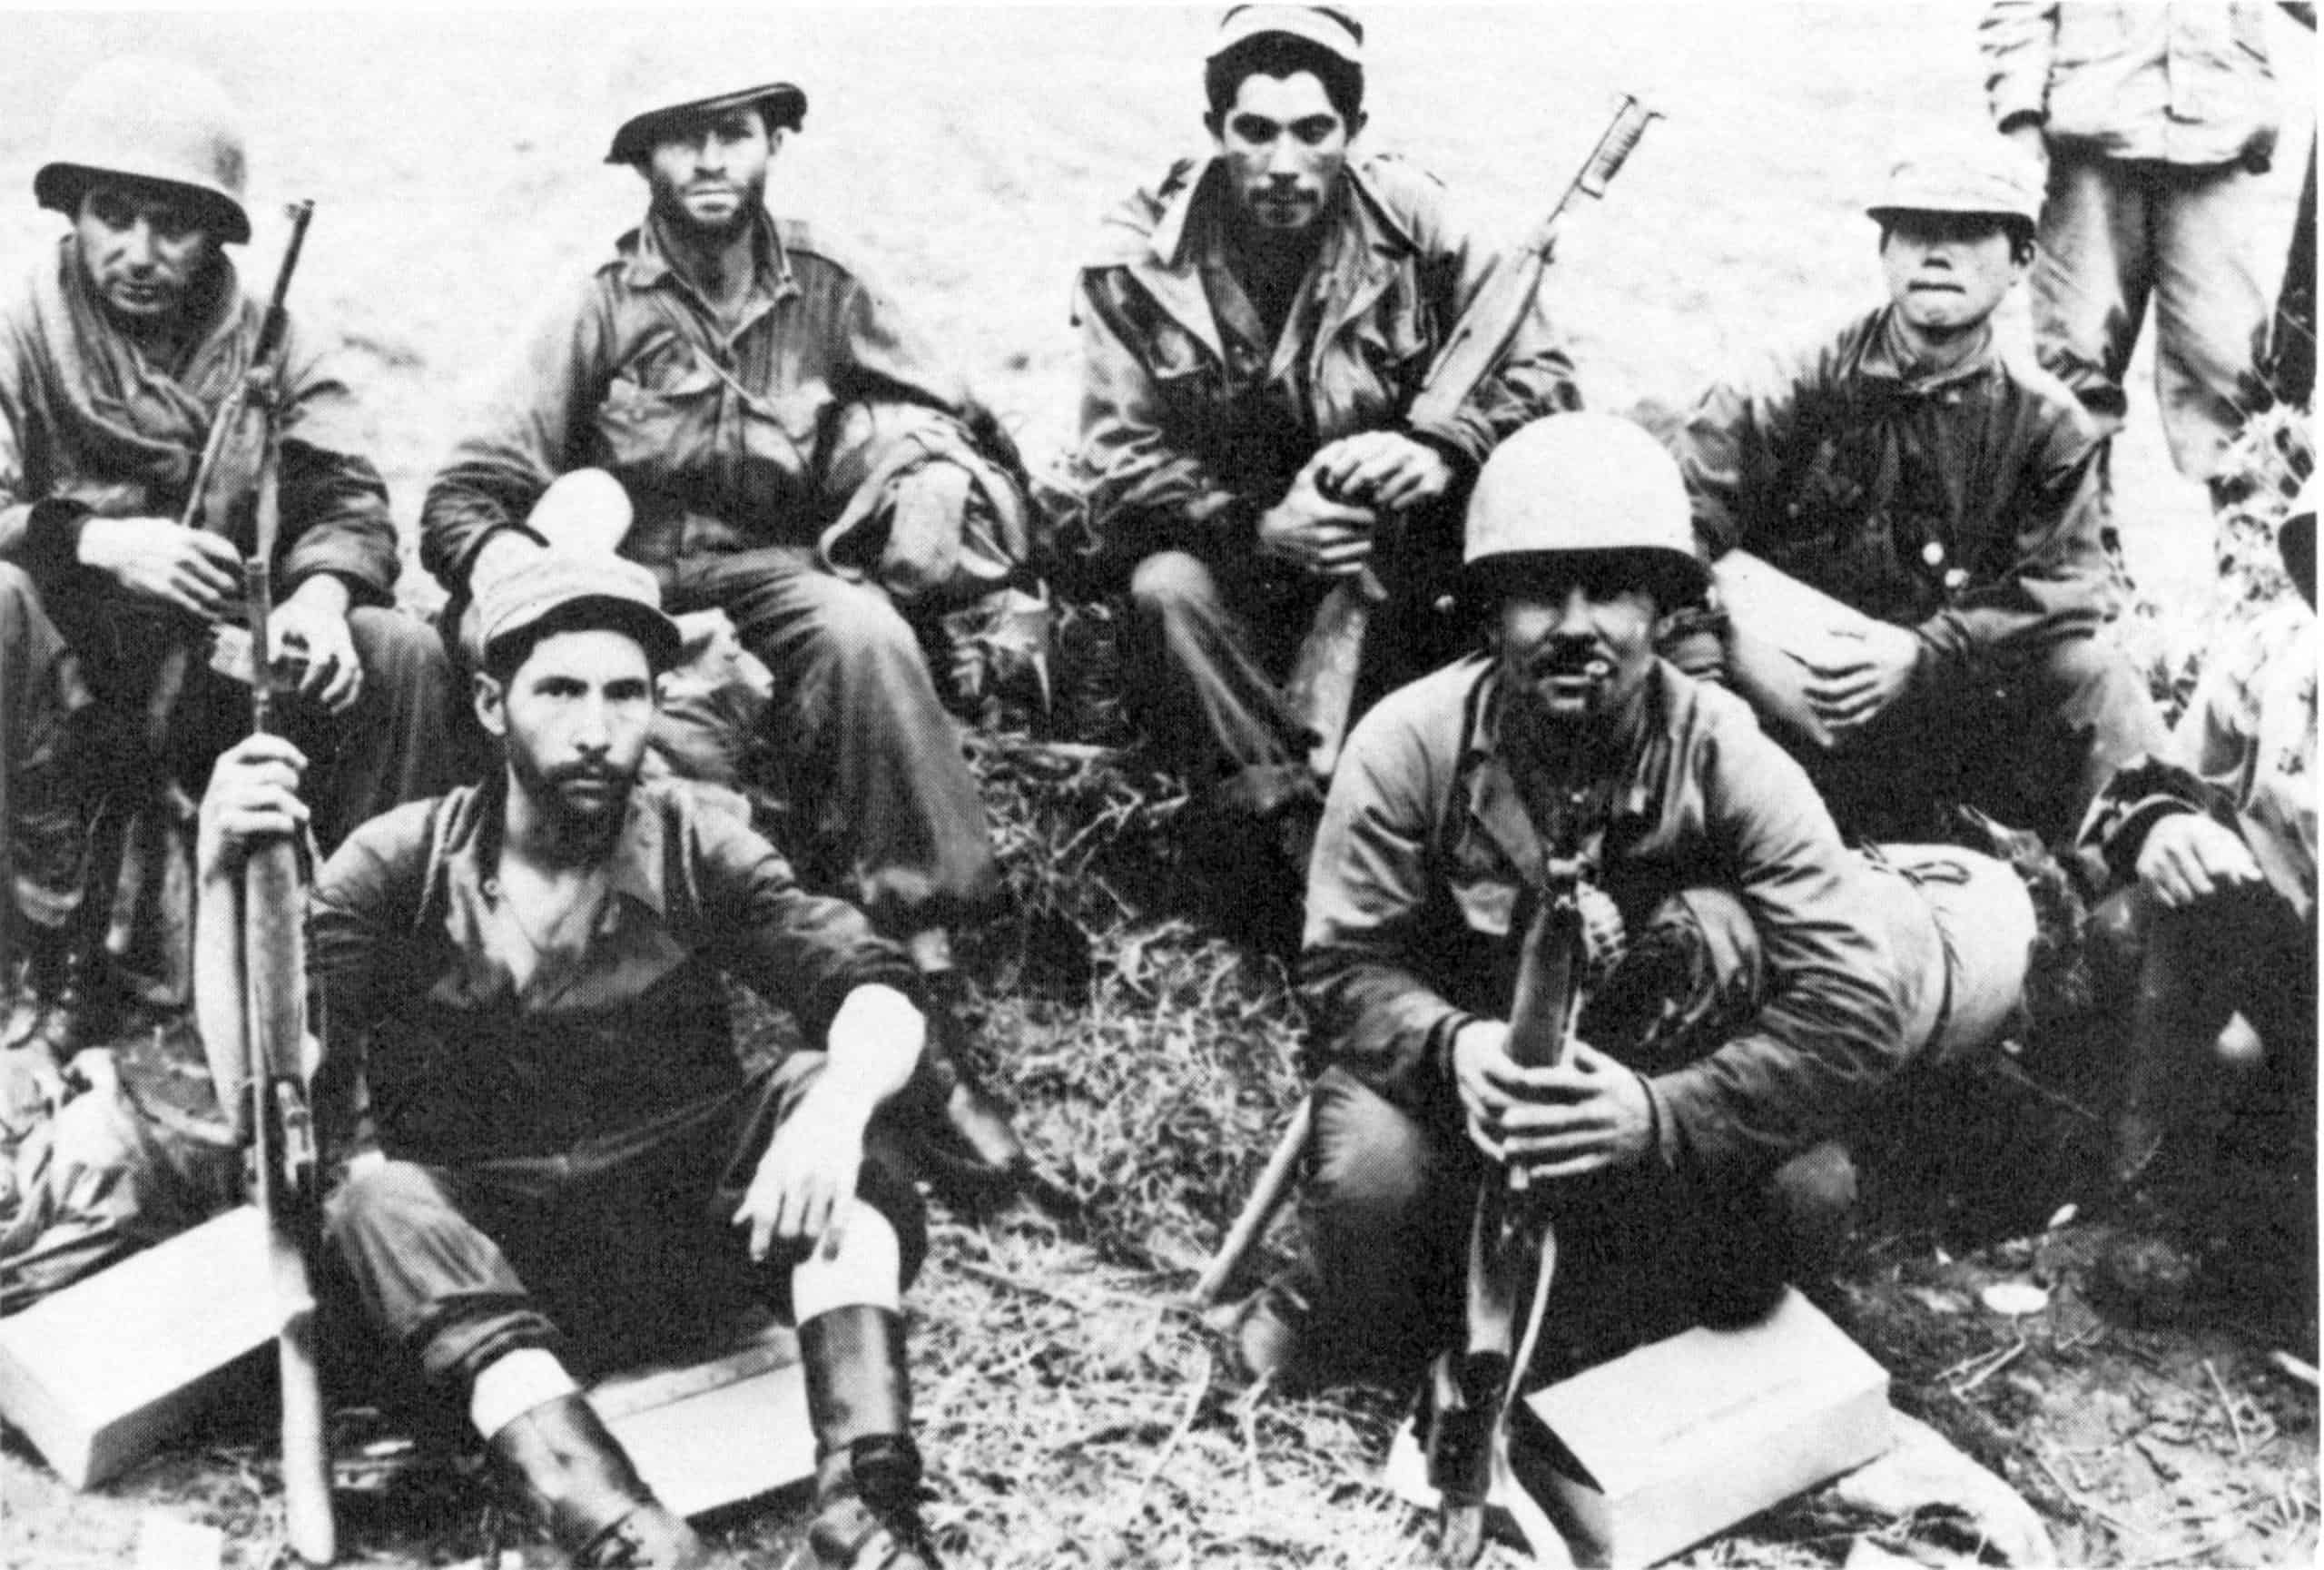 The Borinqueneers' Legacy Lives On